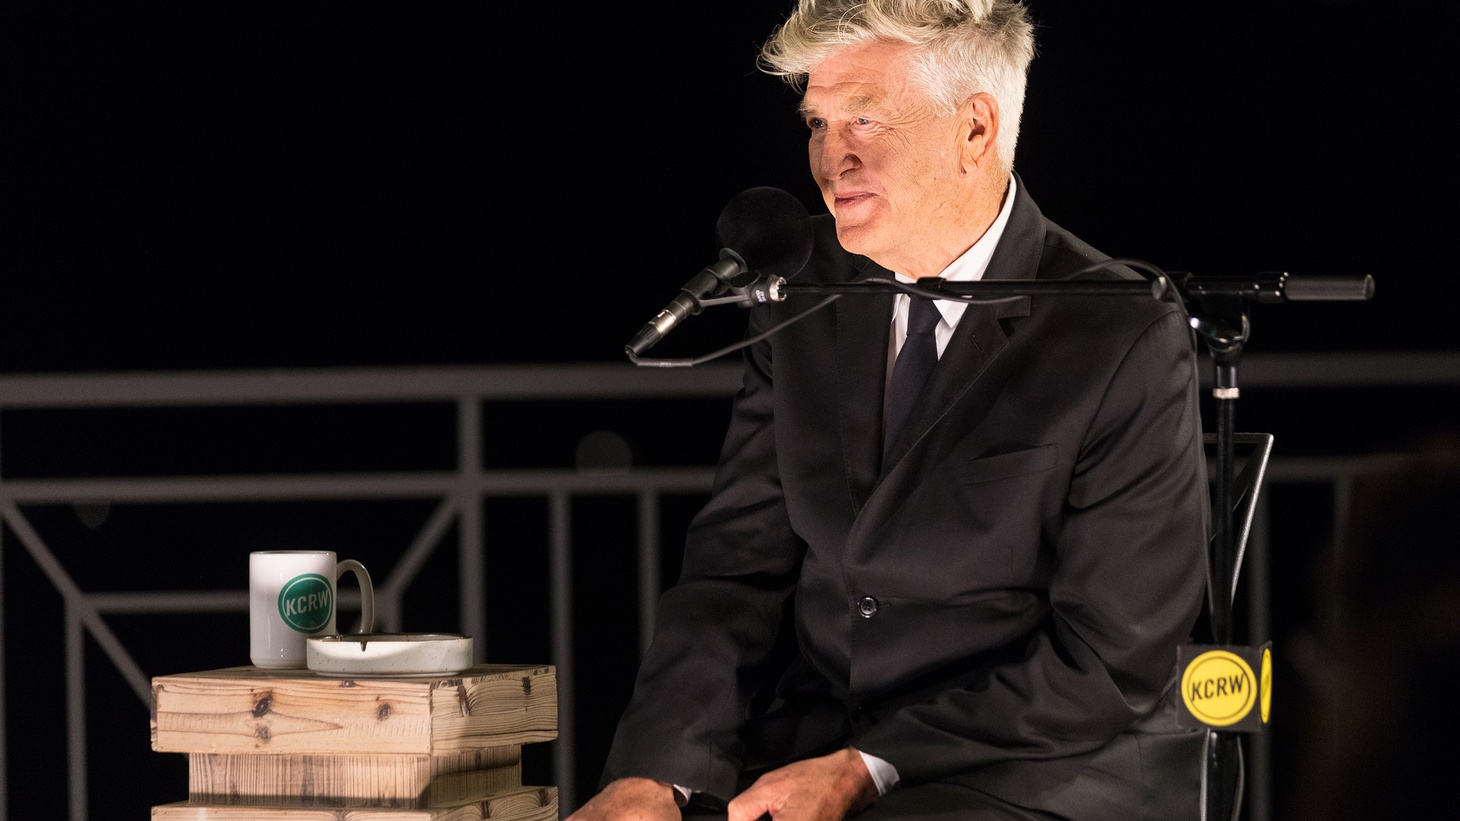 David Lynch has had an immeasurable influence on television, film and music. His groundbreaking series Twin Peaks returned this summer for it's third season after a quarter-century hiatus.  (10am)